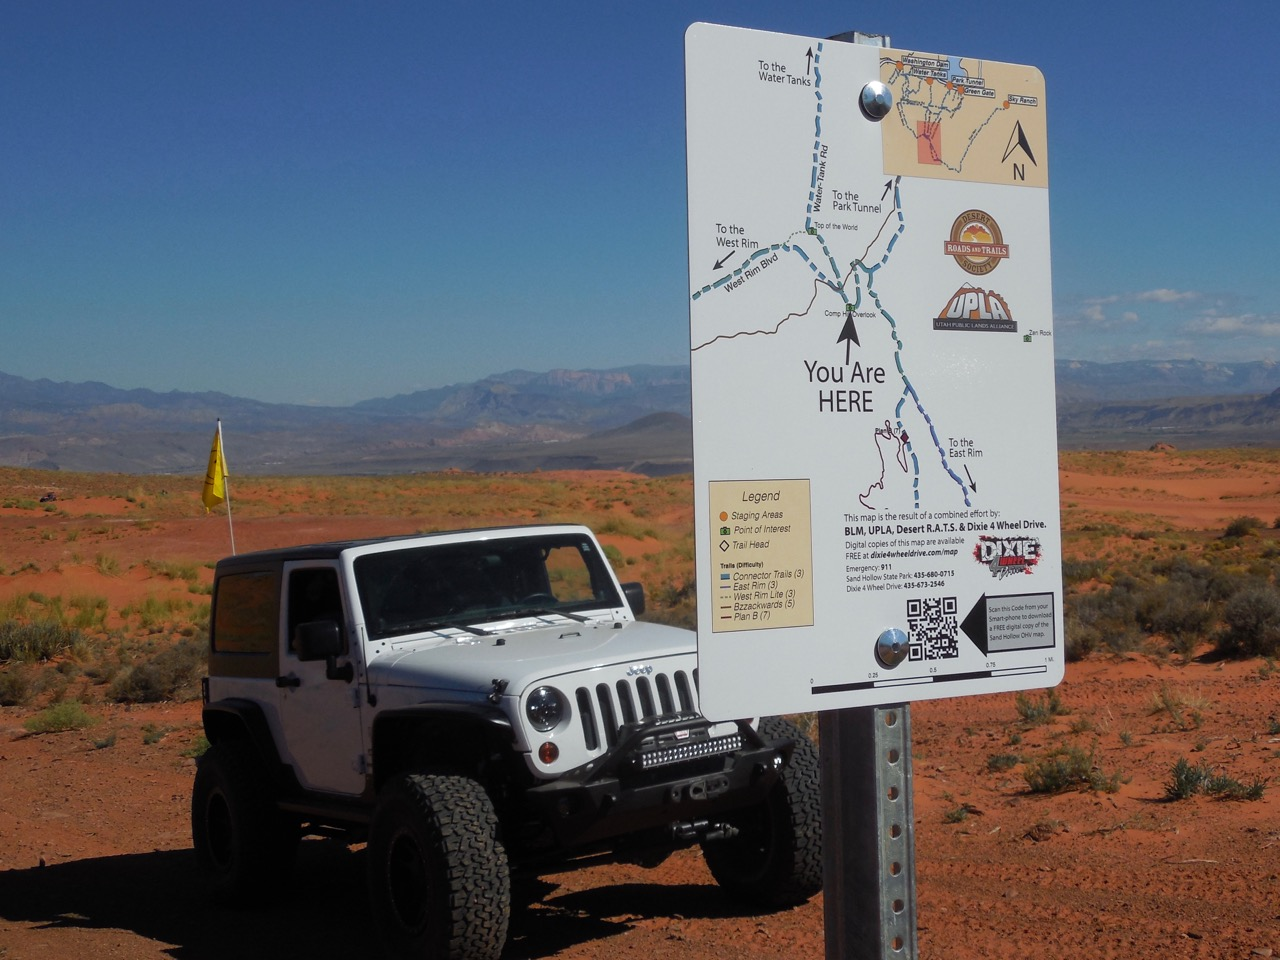 New signs and GPS mapping make Sand Mountain safer and easier to navigate, Hurricane, Utah, Sept. 24, 2016 | Photo courtesy of Desert Roads and Trails Society – Desert RATS, St. George News